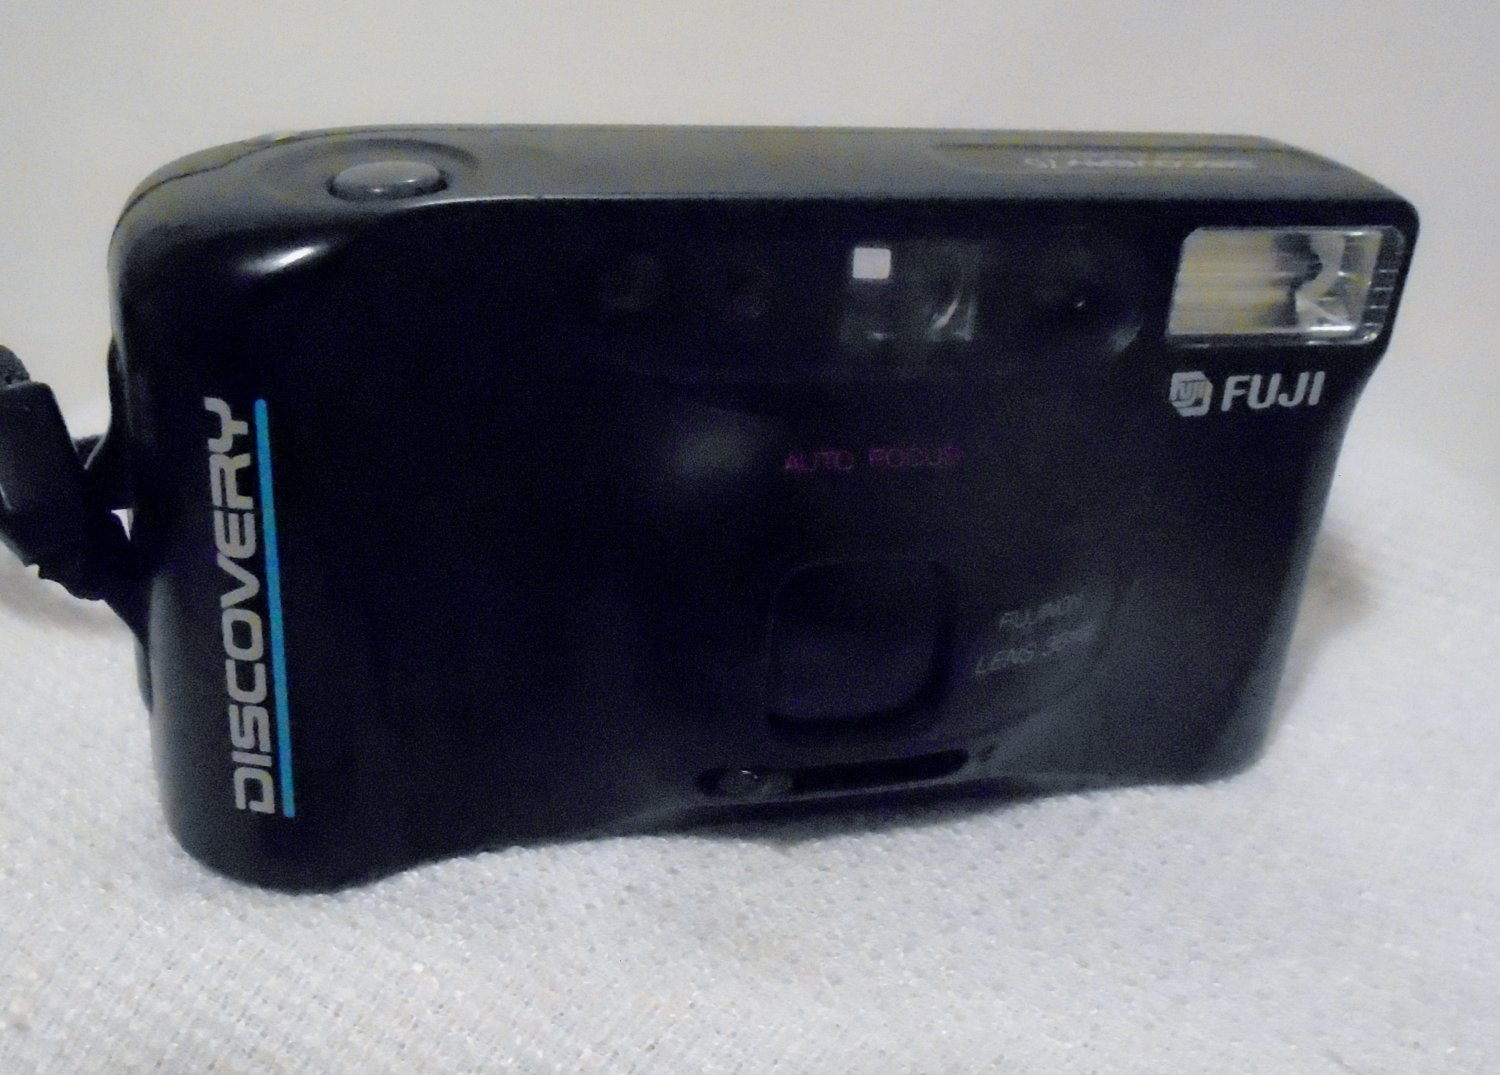 Fuji Discovery 75 Compact Point and Shoot